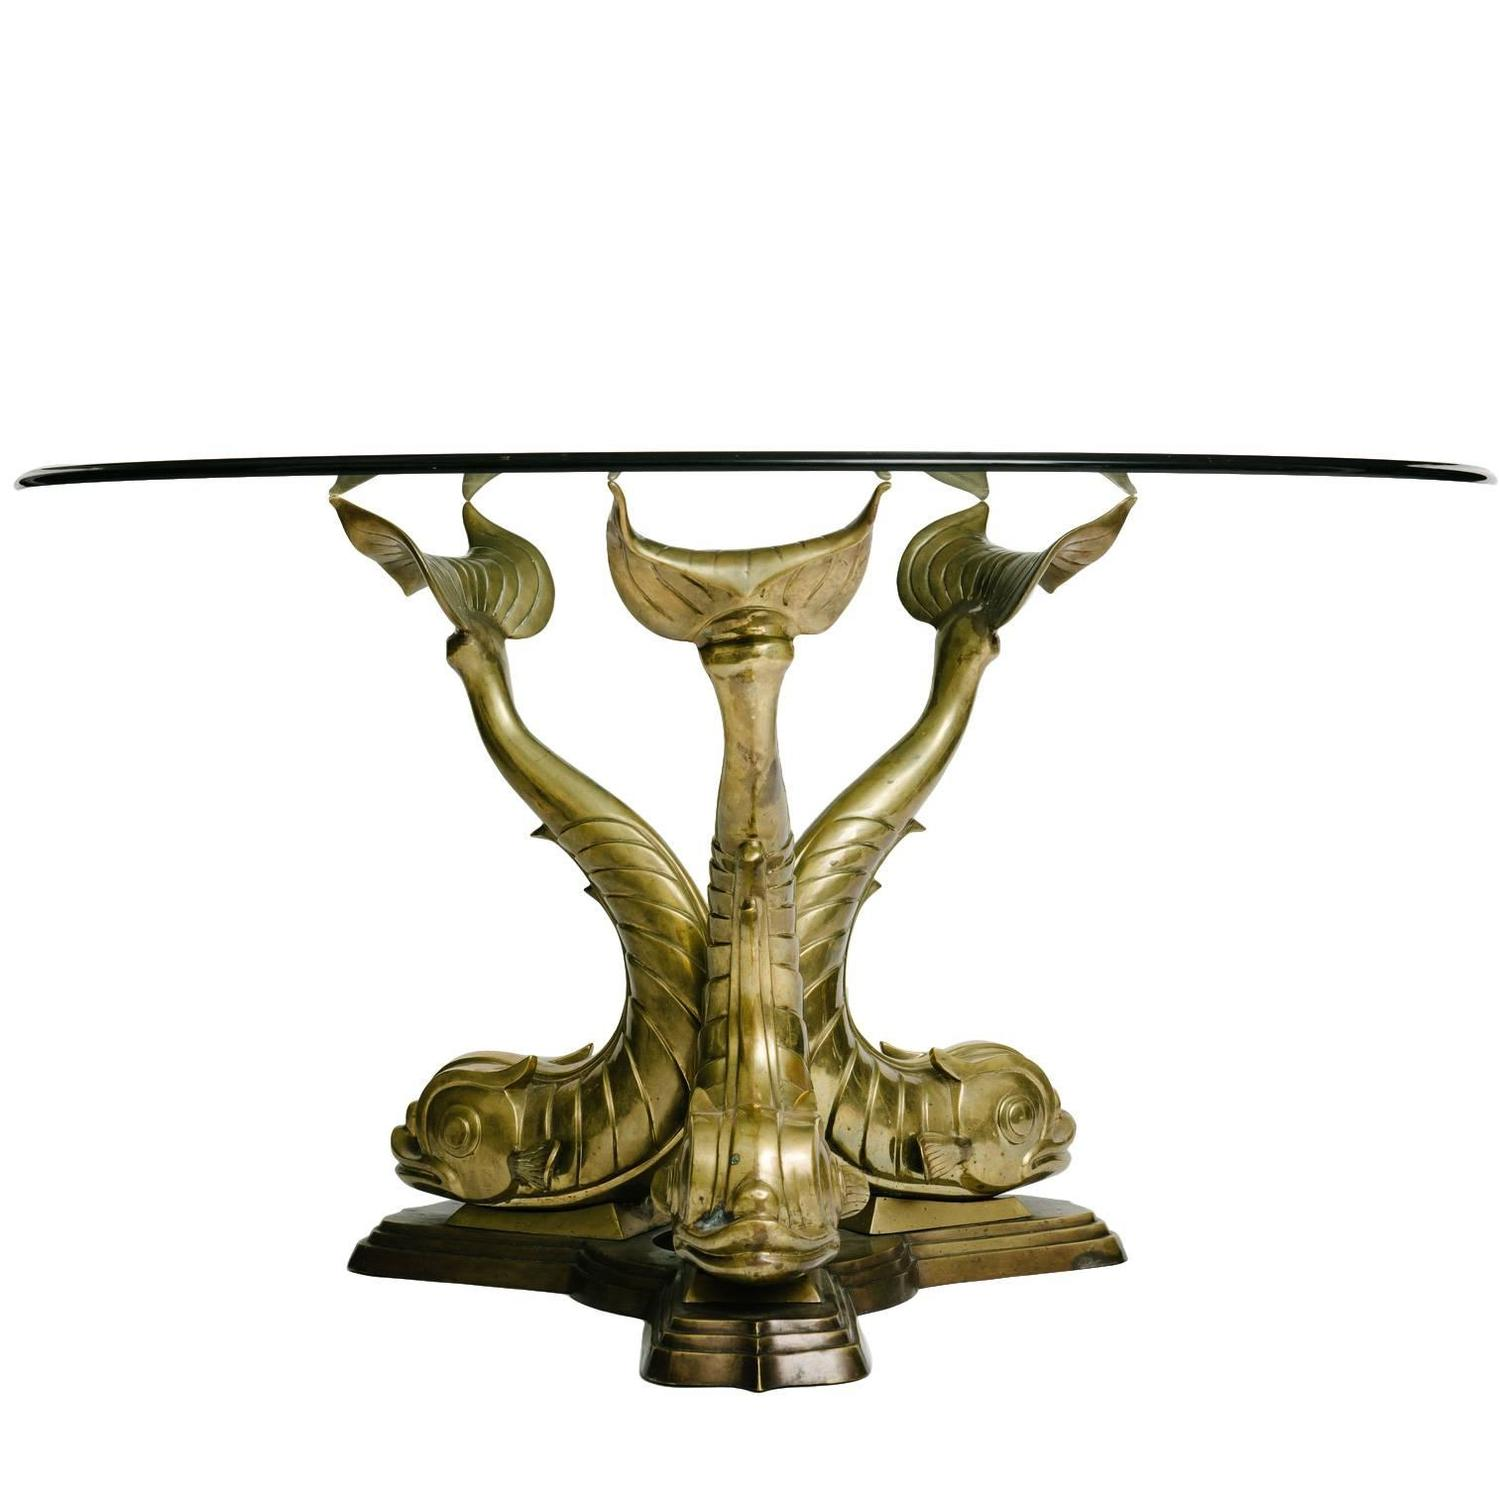 Italian Brass Dolphin Dining Table Base For Sale at 1stdibs